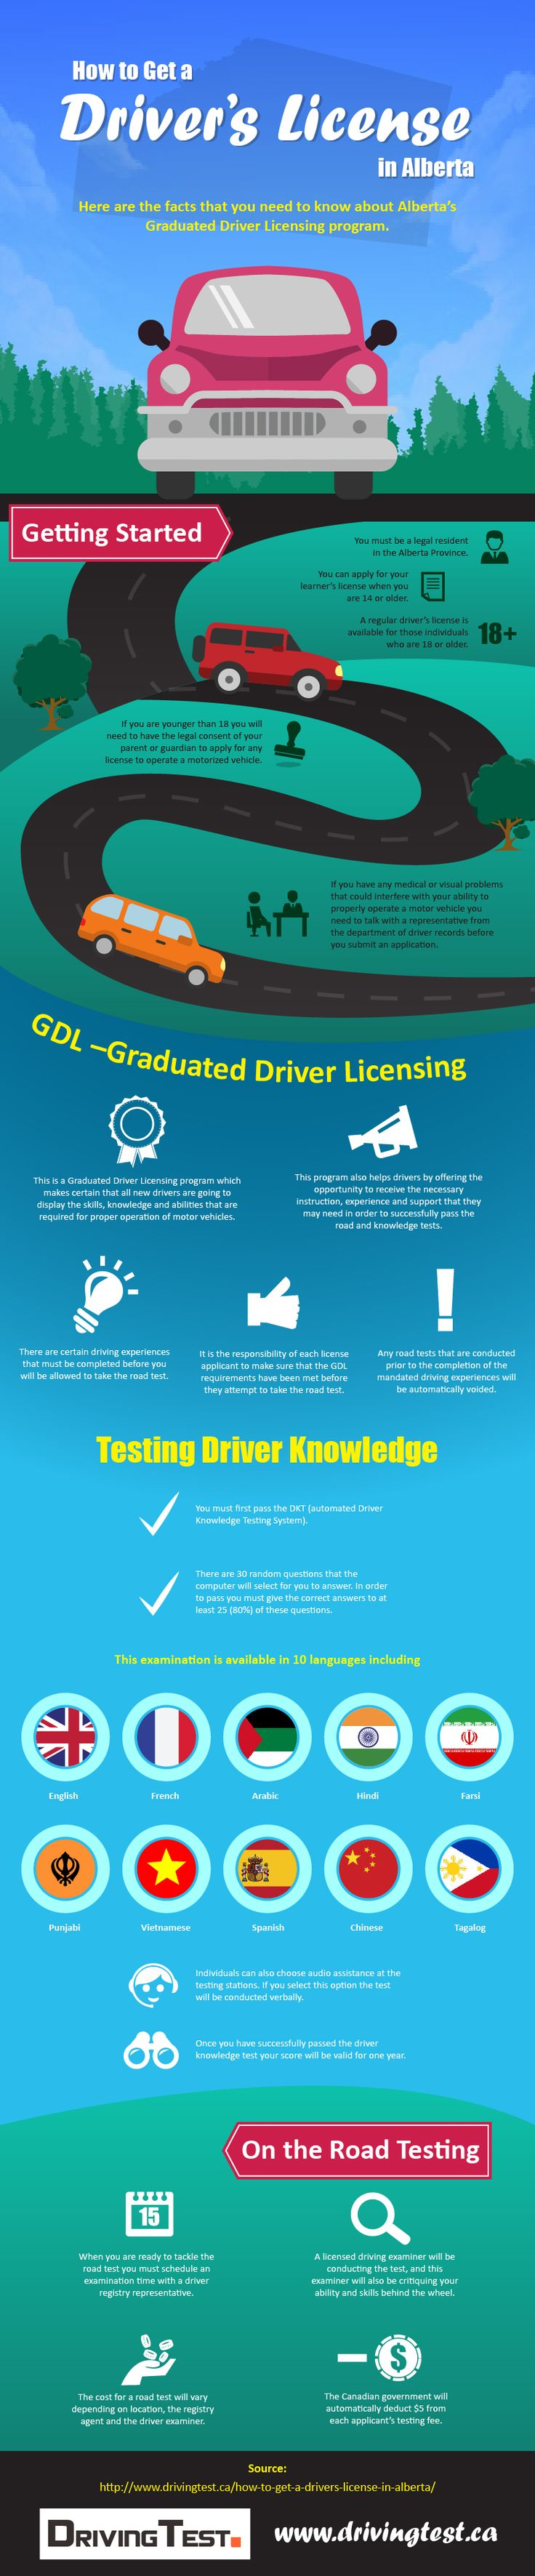 Free online Alberta driving test and Alberta learners test for Class 7 Questions and Answers, We offer free practice for signs and traffic rules test.